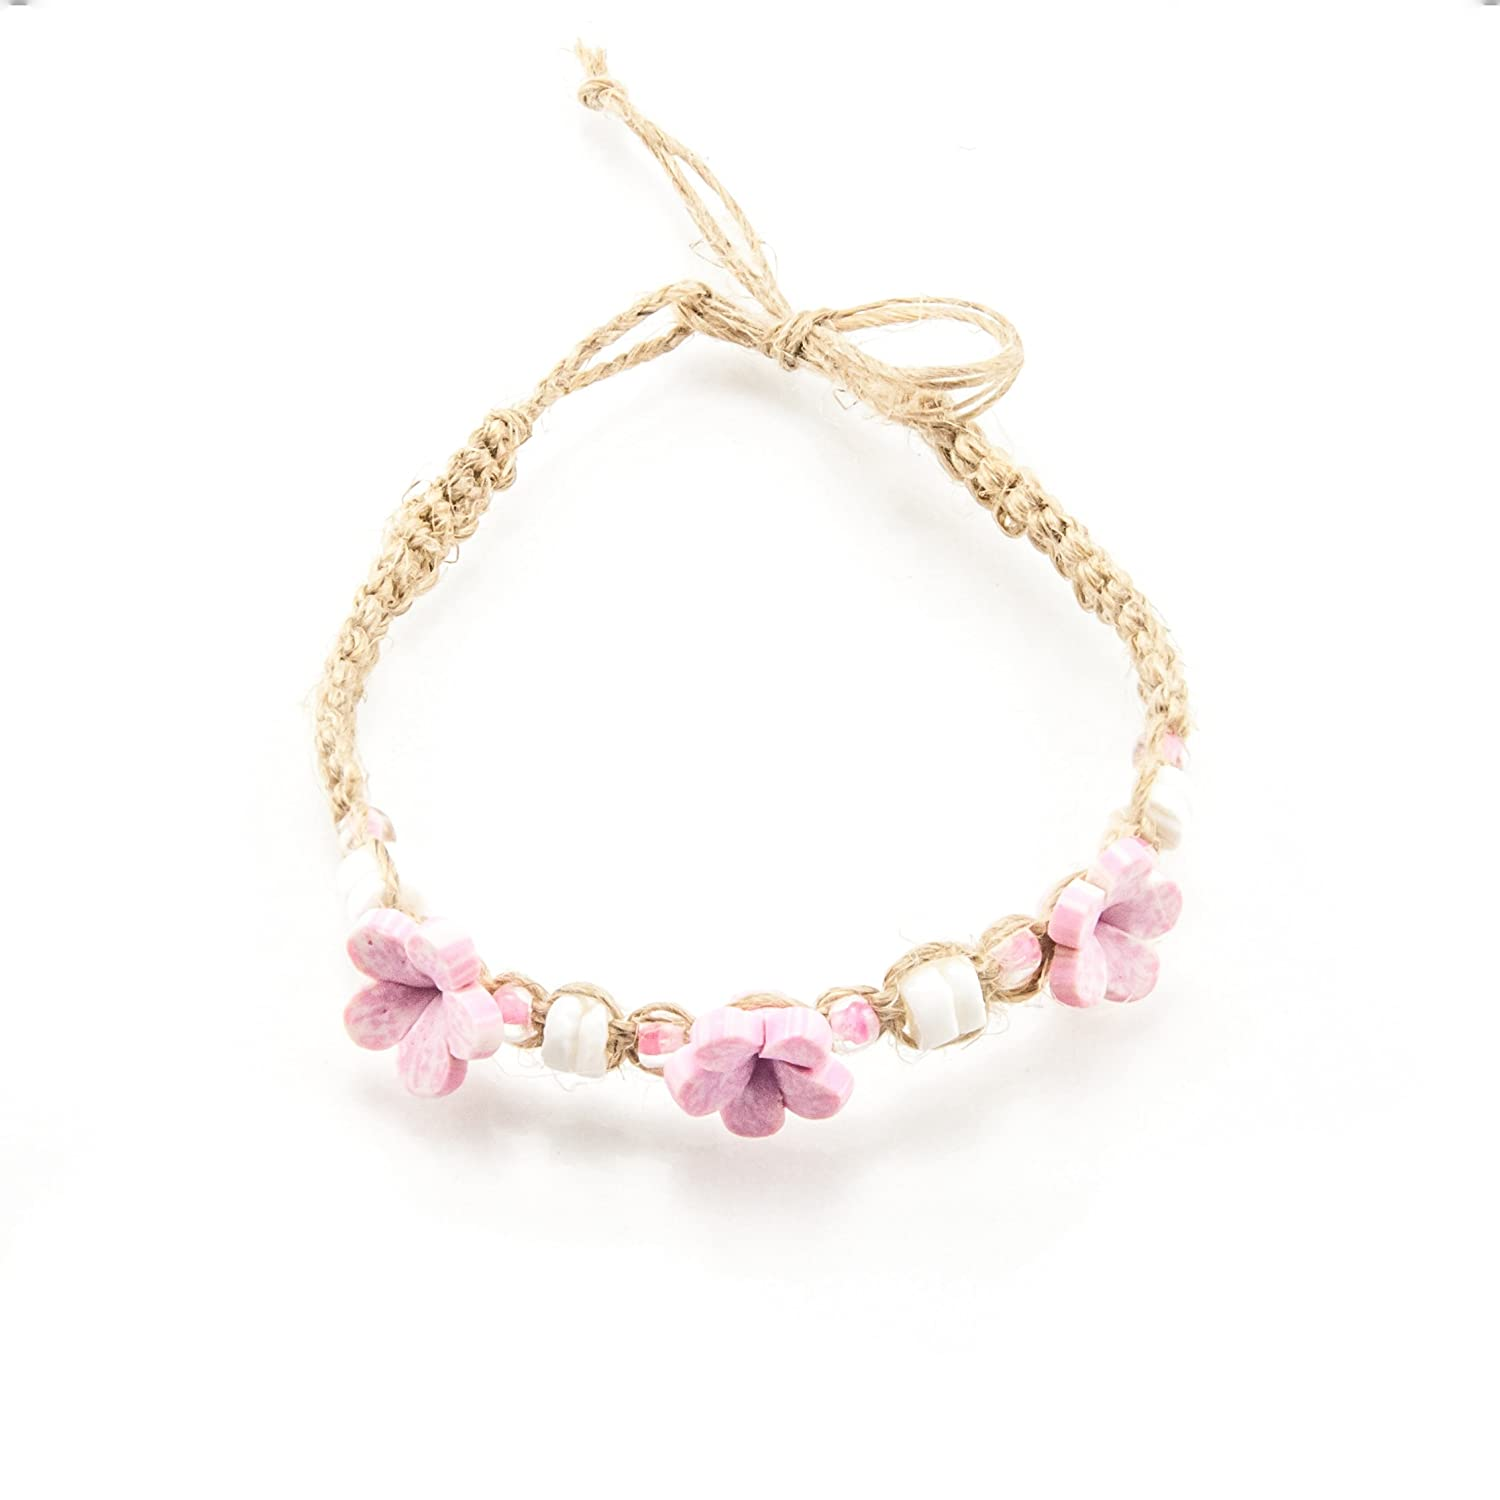 Pink Beads and Pink 3D Fimo Flower Beads BlueRica Hemp Anklet Bracelet with Puka Shell Beads